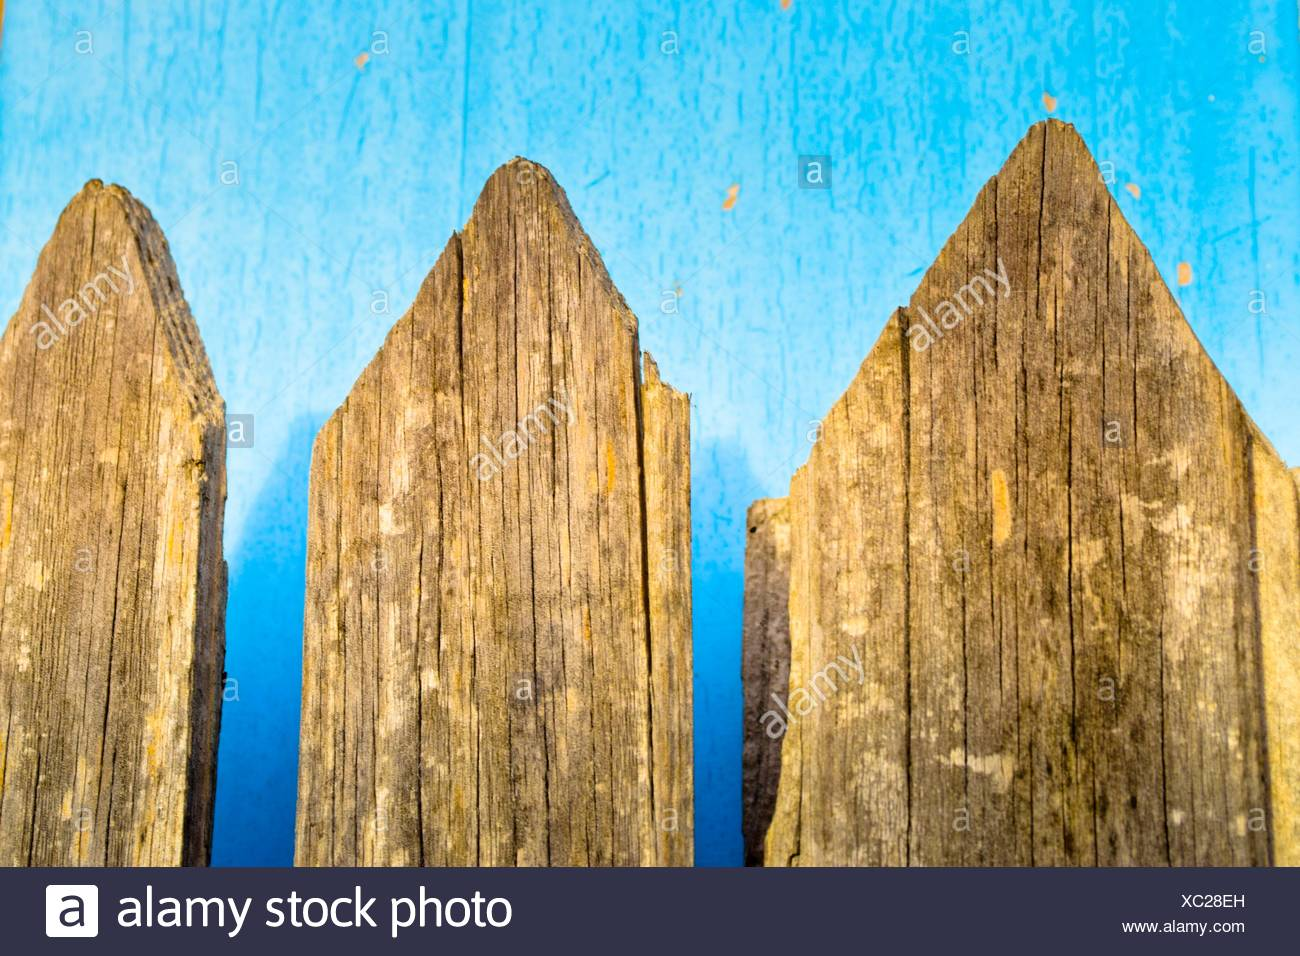 Wooden Picket Fence Stock Photos & Wooden Picket Fence